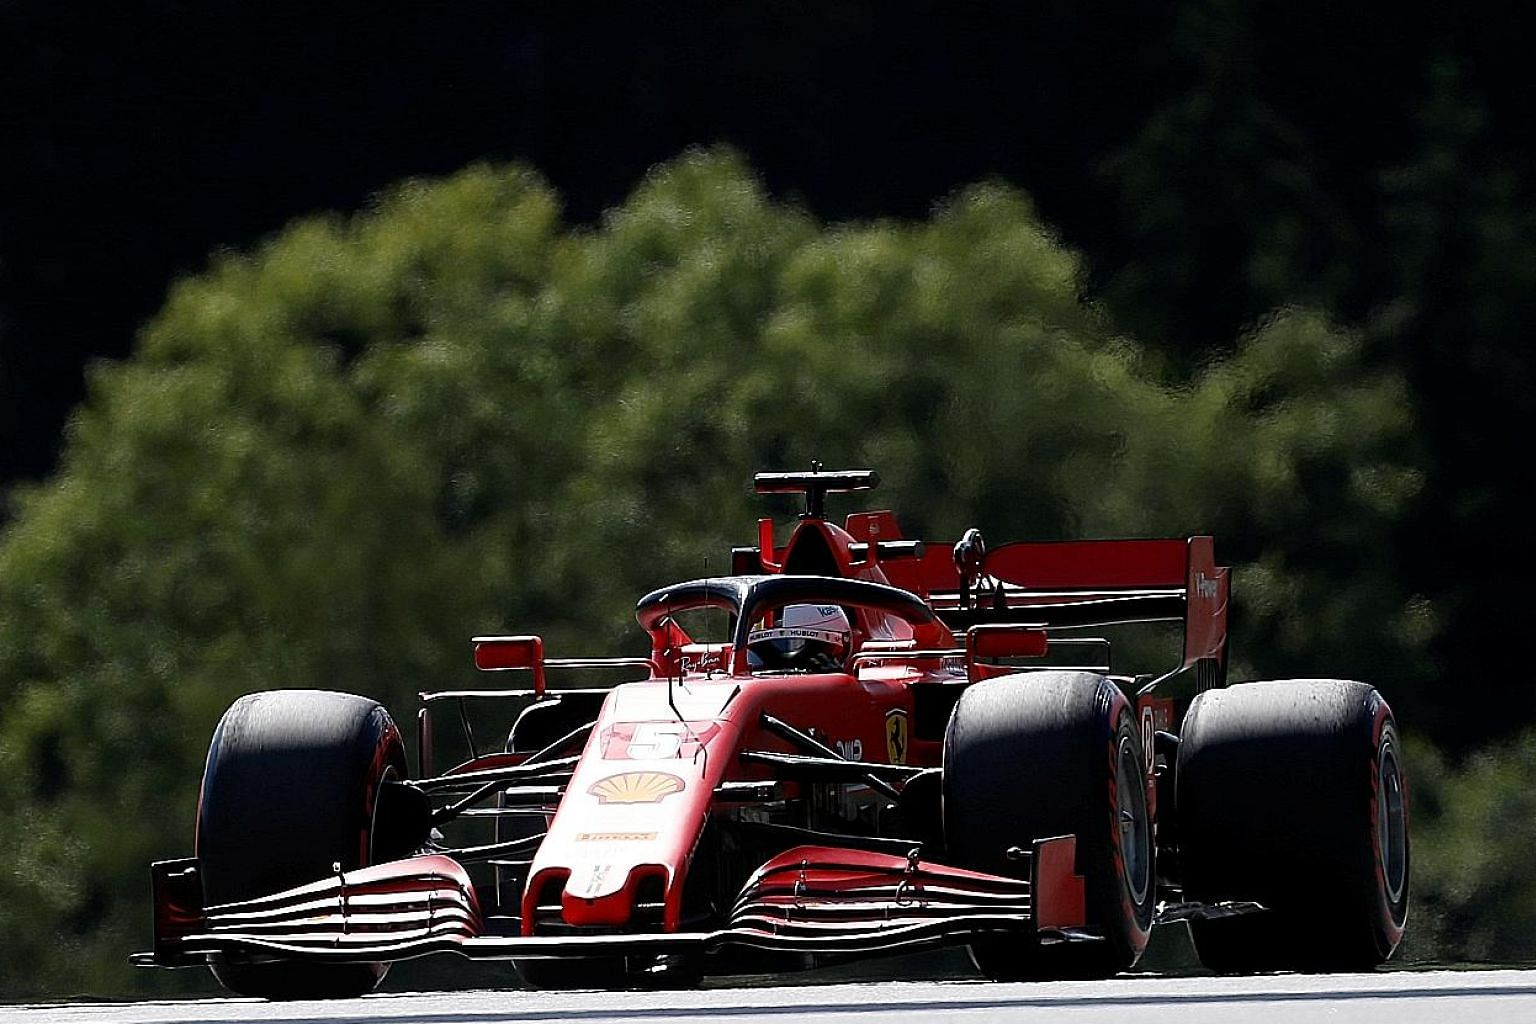 Despite Ferrari's Charles Leclerc finishing second last weekend, teammate Sebastian Vettel managed only 10th after qualifying 11th. Team boss Mattia Binotto admitted they are losing up to 0.8 seconds on the straights.